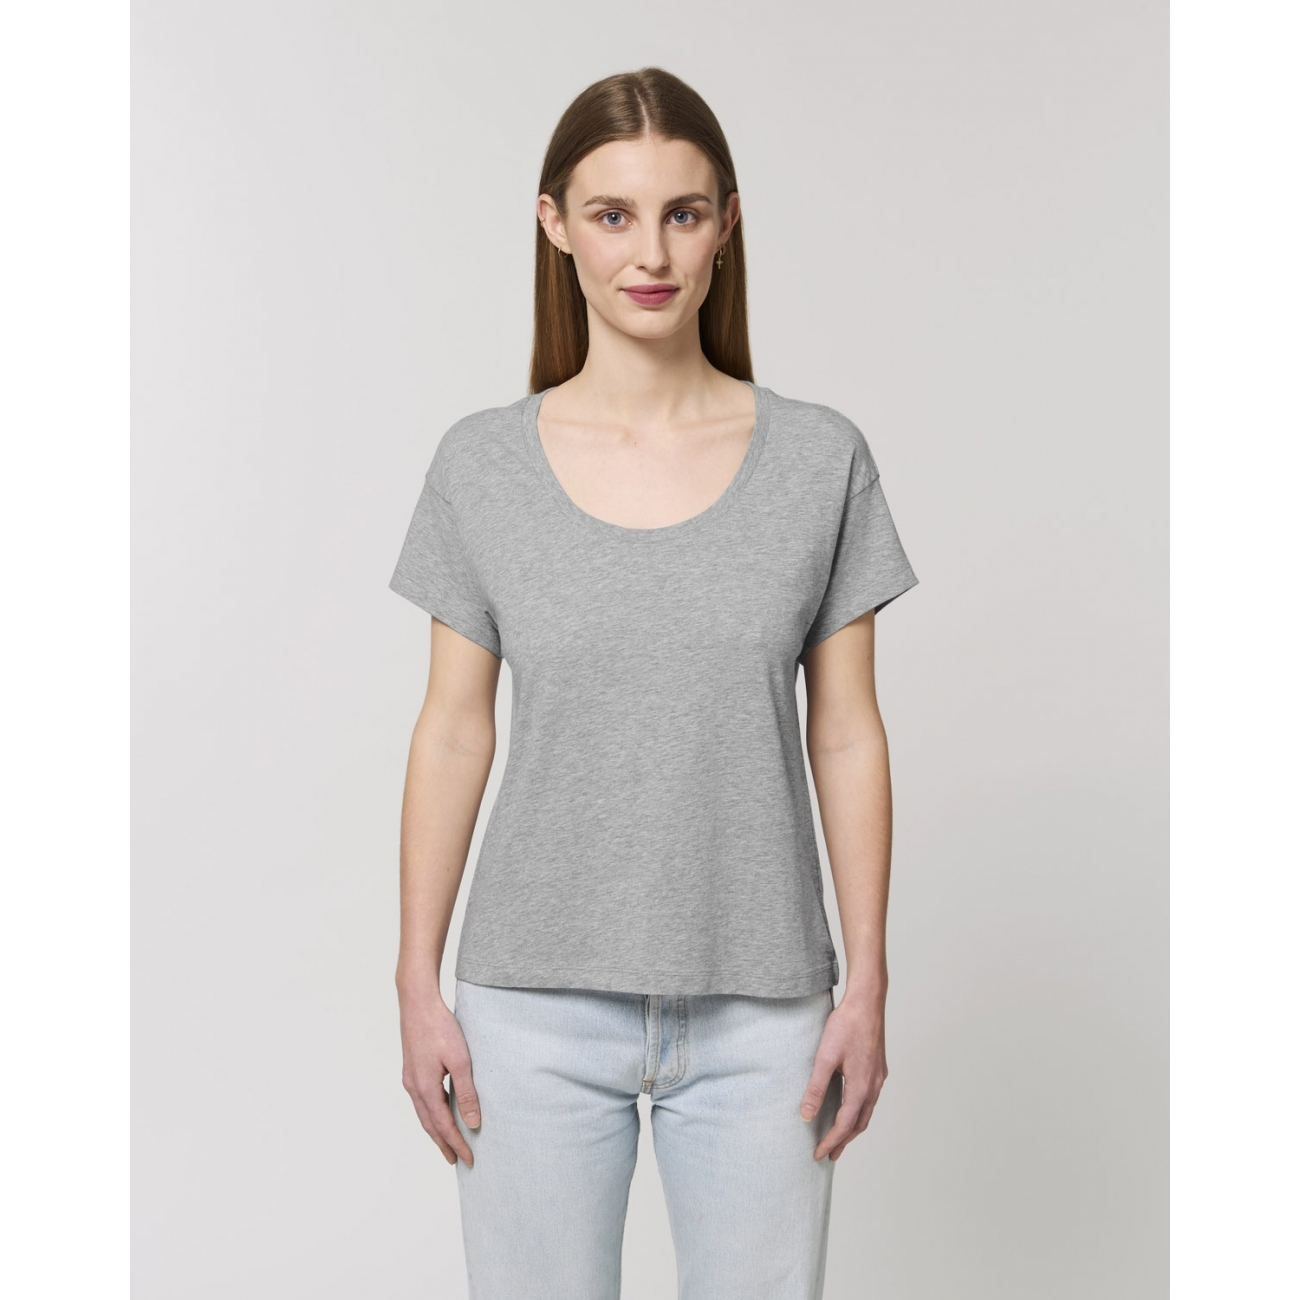 https://tee-shirt-bio.com/8775-thickbox_default/tee-shirt-pour-femme-gris-chine-a-manches-montees-coton-bio-chiller.jpg